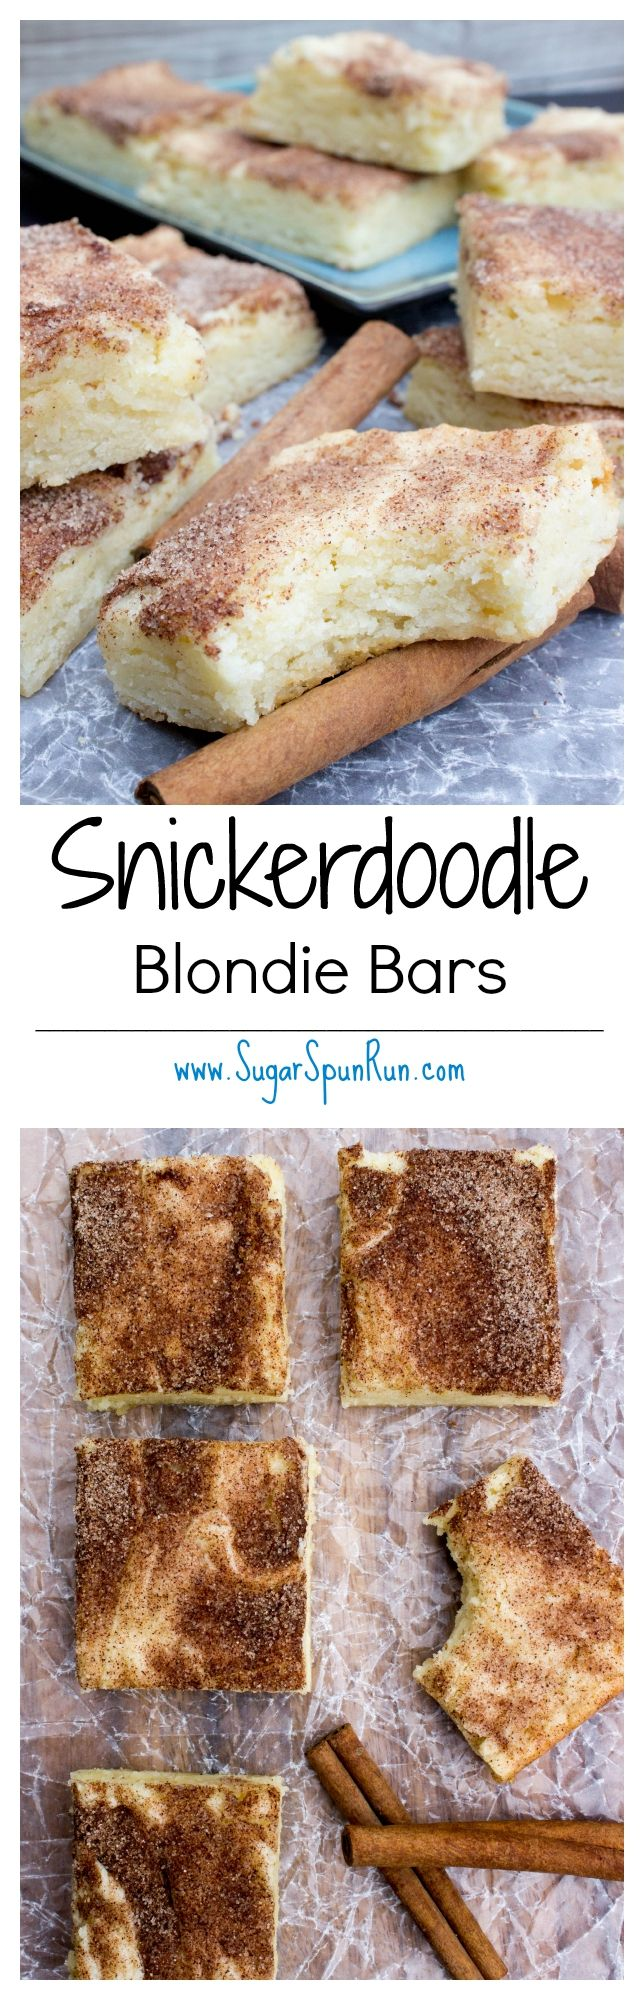 Snickerdoodle bar recipe cake mix